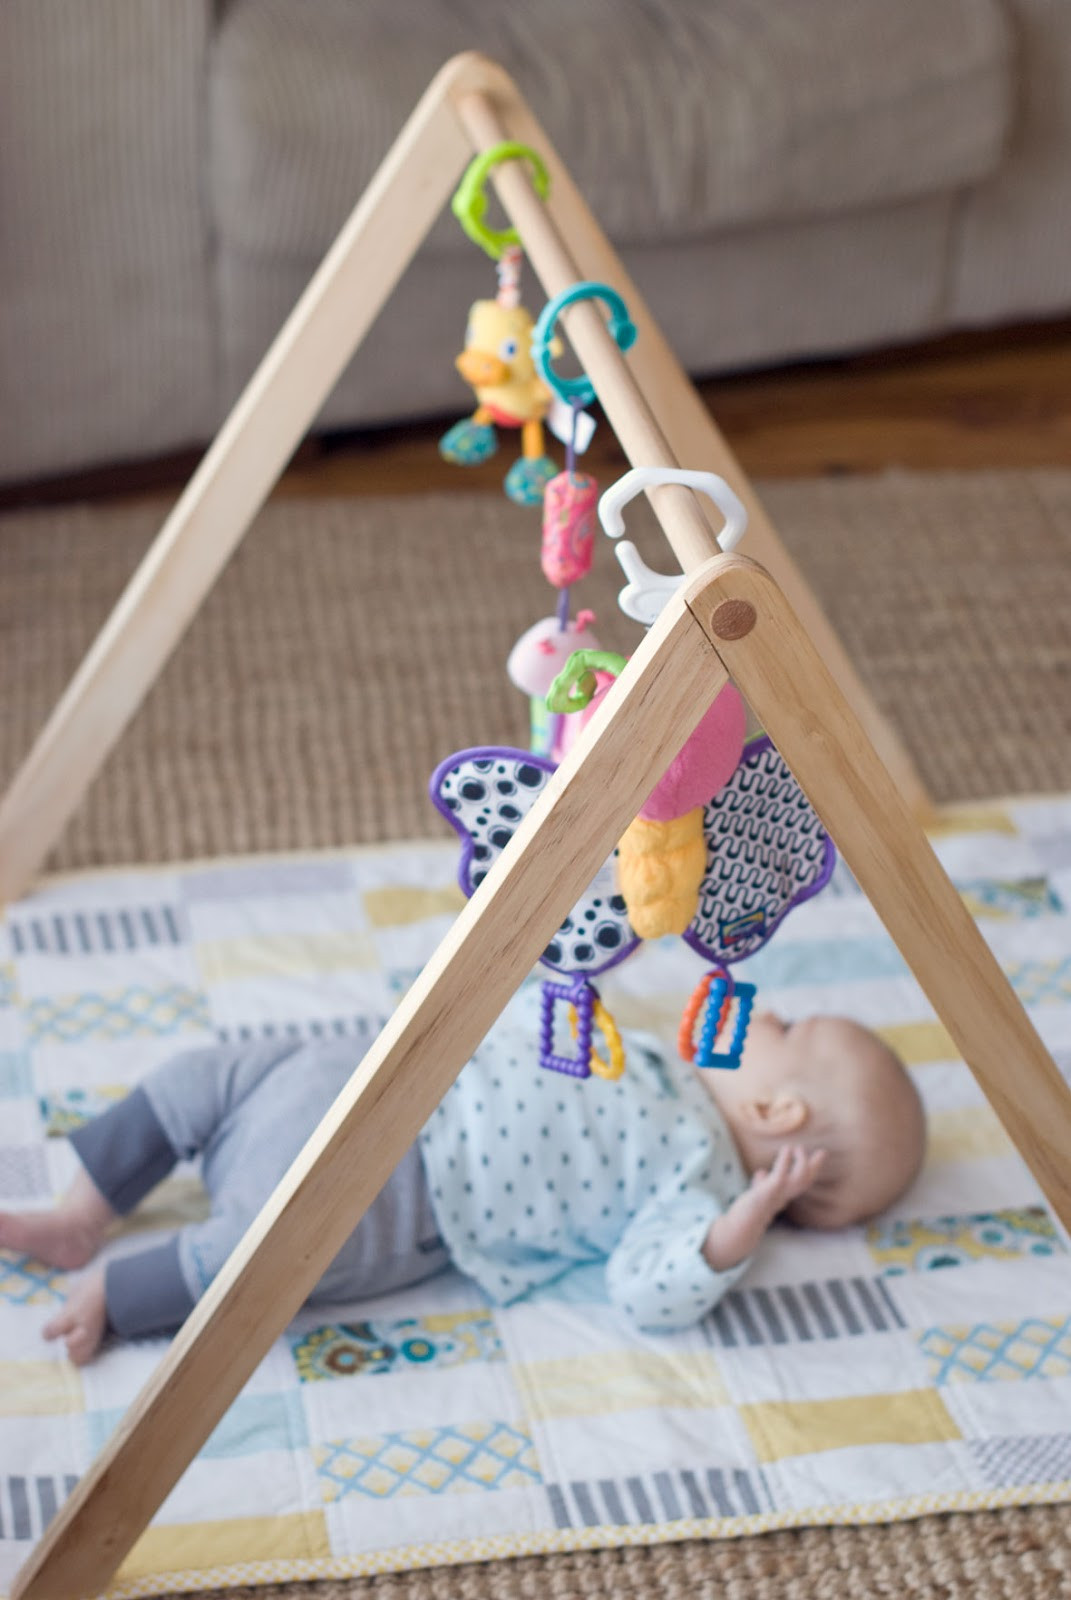 Best ideas about DIY Baby Gym . Save or Pin Empty Handed Wooden Baby Gym TUTORIAL NOW AVAILABLE Now.